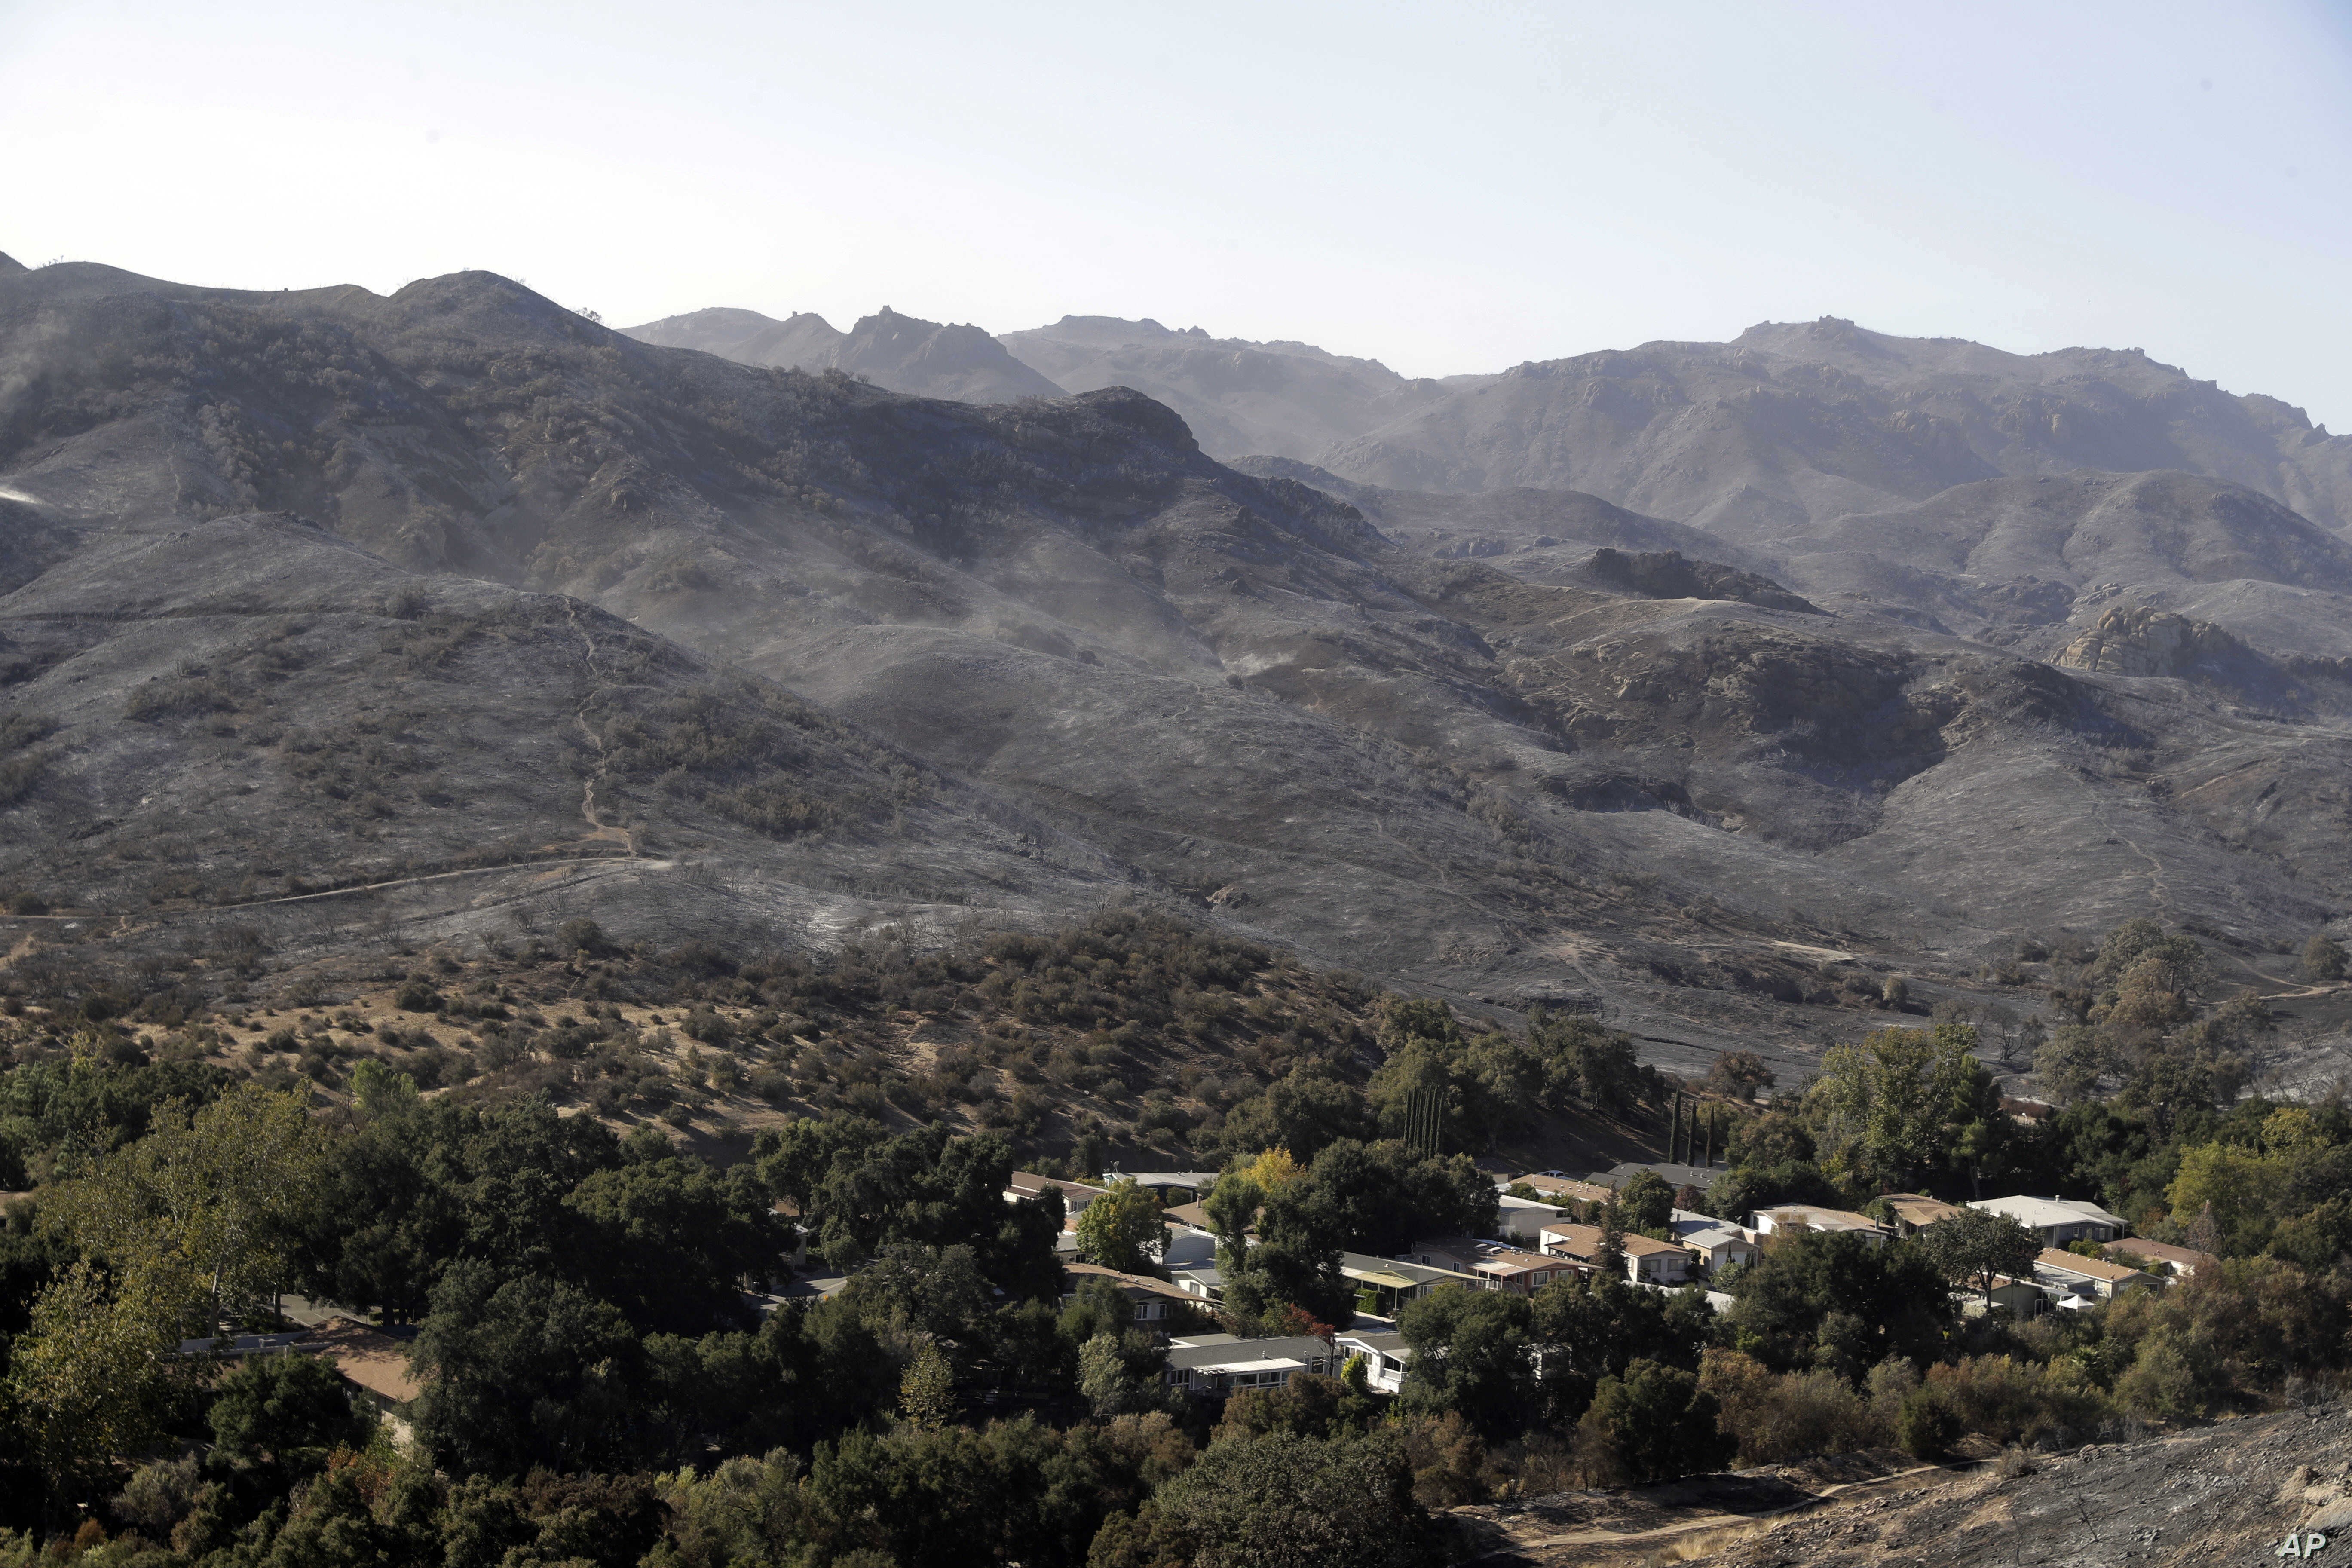 Burned down mountains tower over a residential neighborhood in the aftermath of a wildfire, Nov. 12, 2018, in Westlake Village, California.